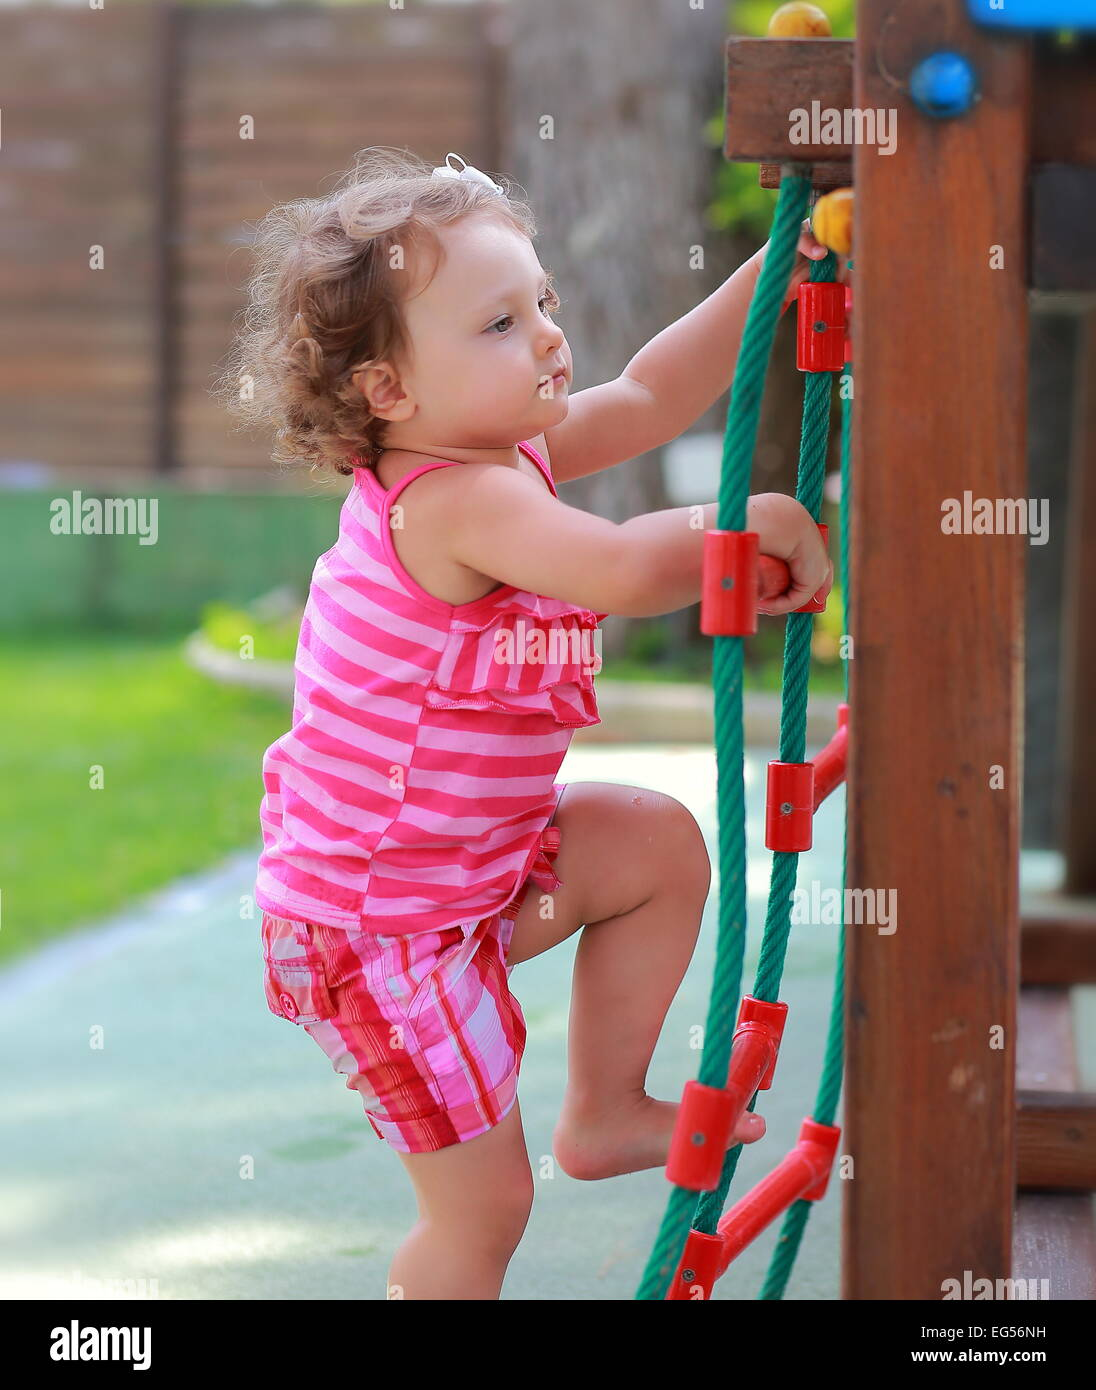 Small girl child climbing up on children activity ladder outdoors - Stock Image